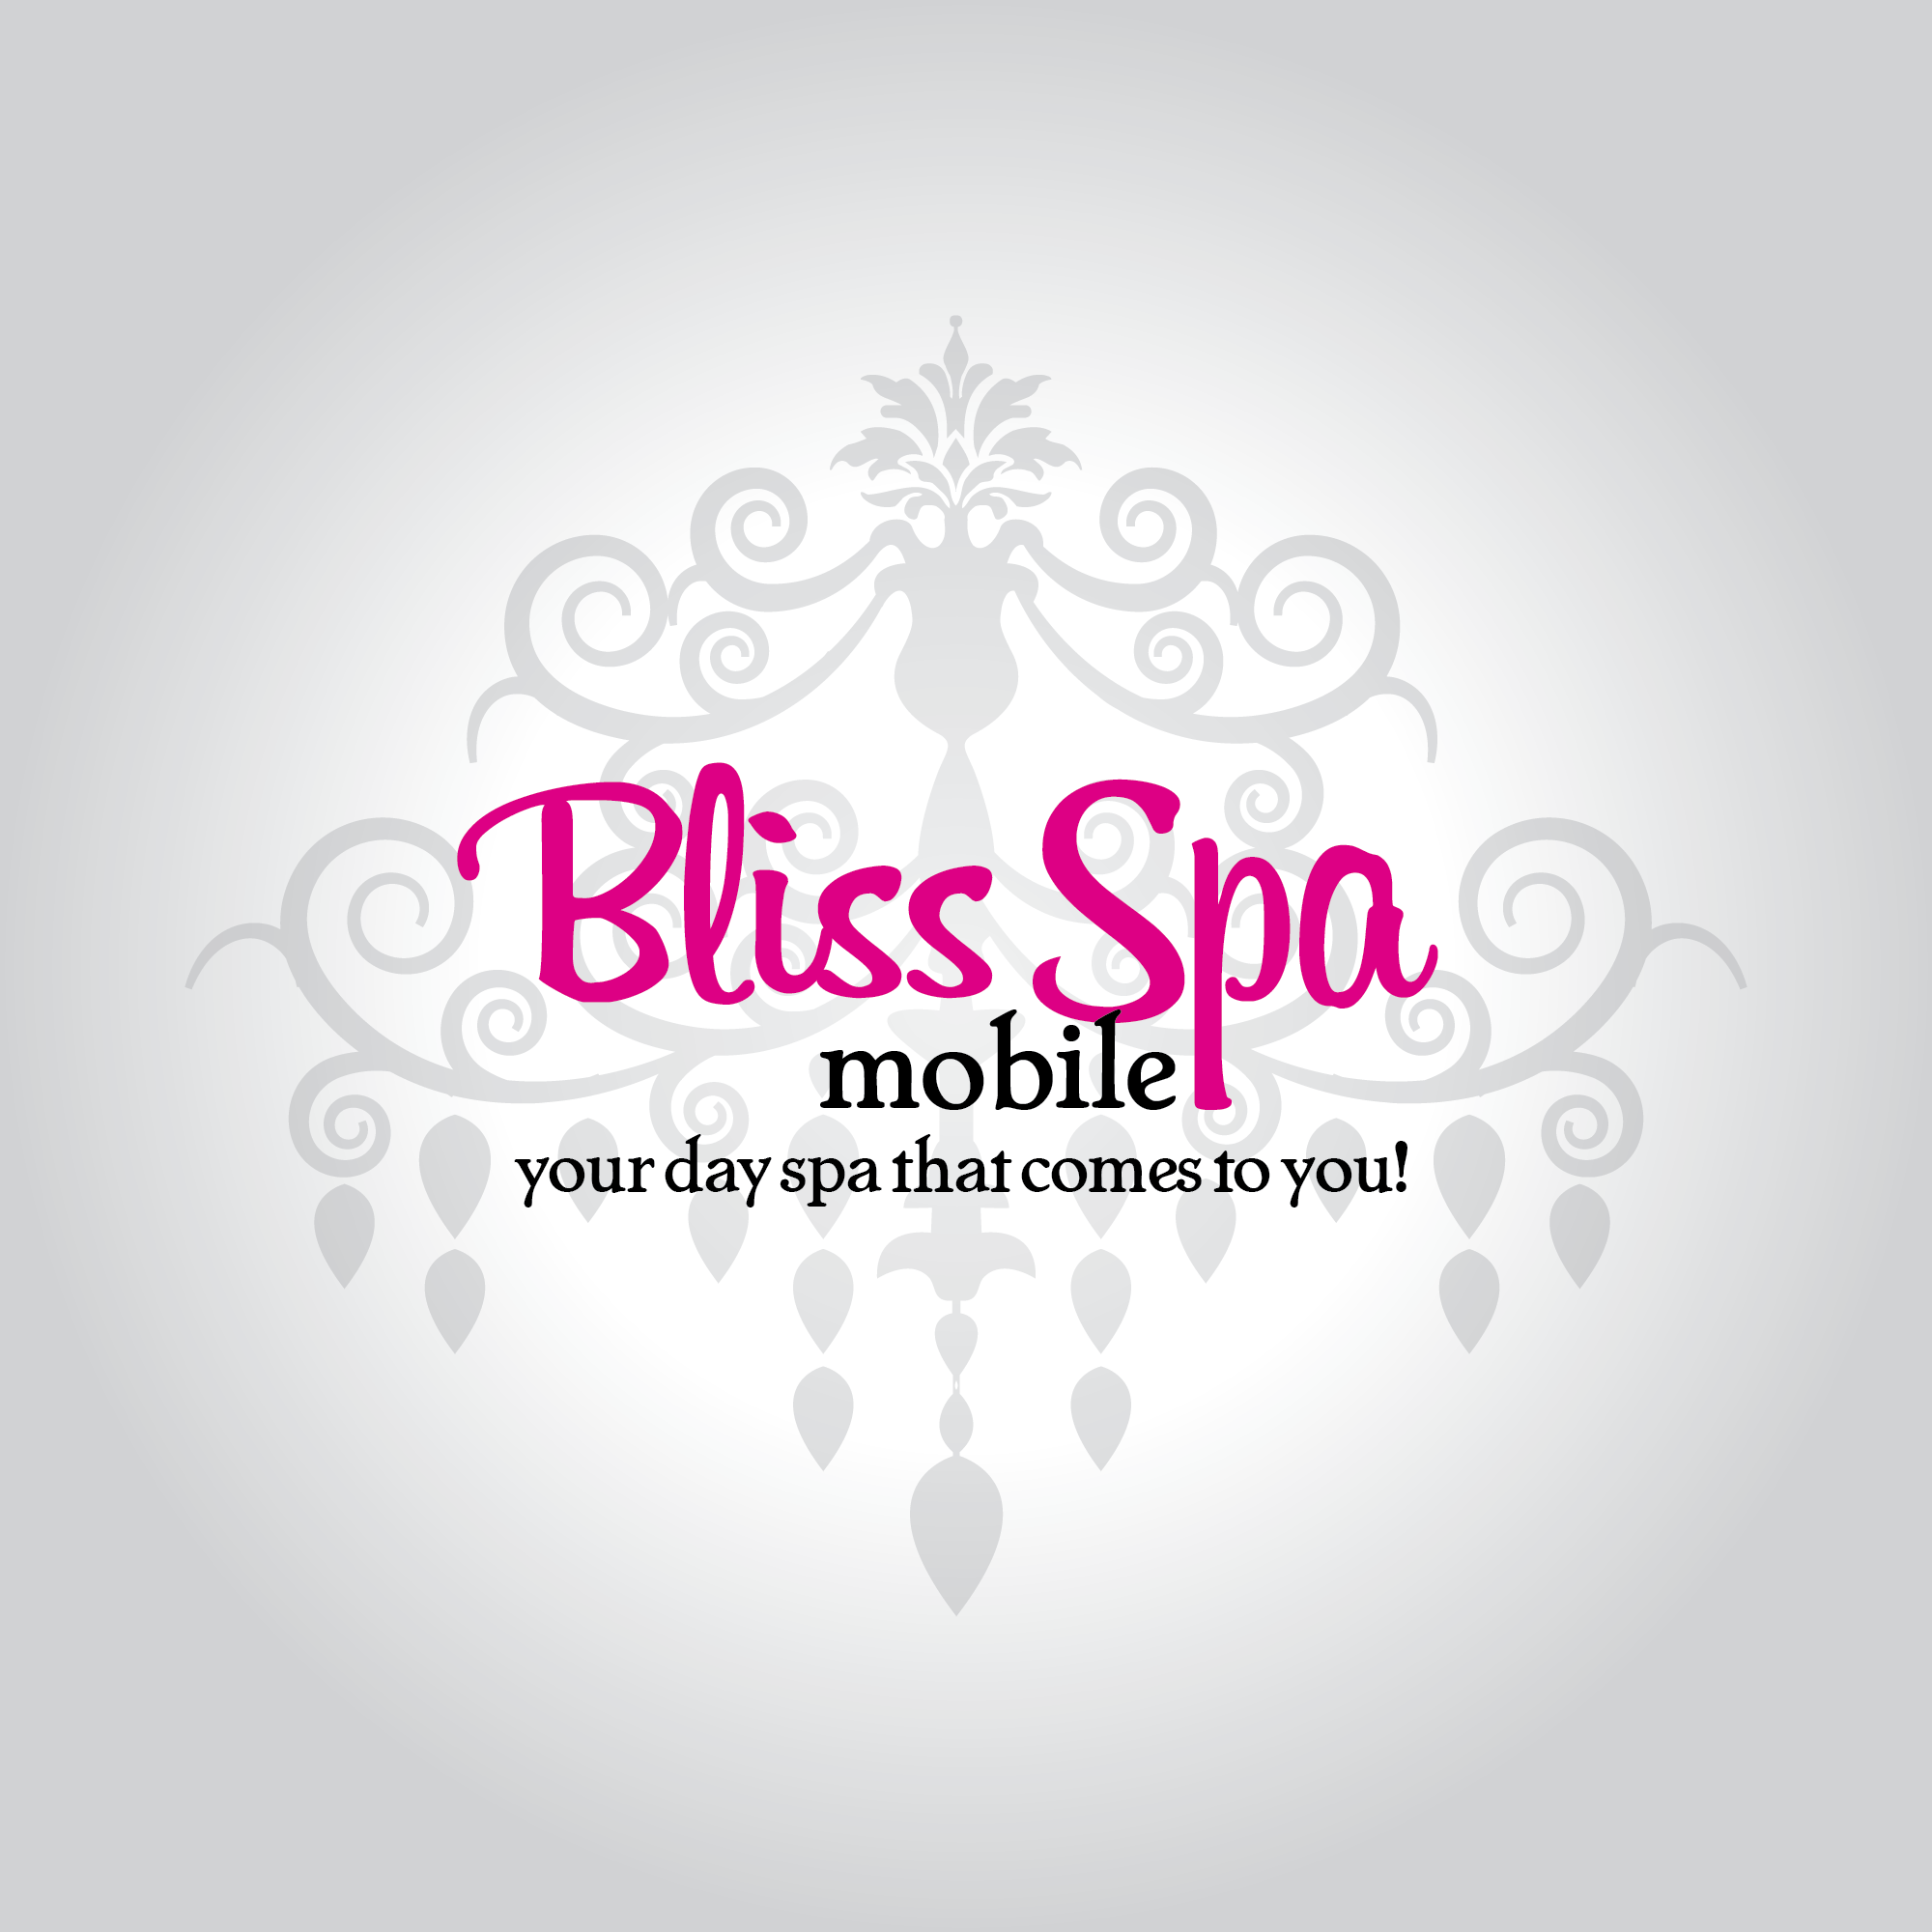 Logo Design by creatives - Entry No. 72 in the Logo Design Contest New Logo Design for Bliss Spa Mobile.